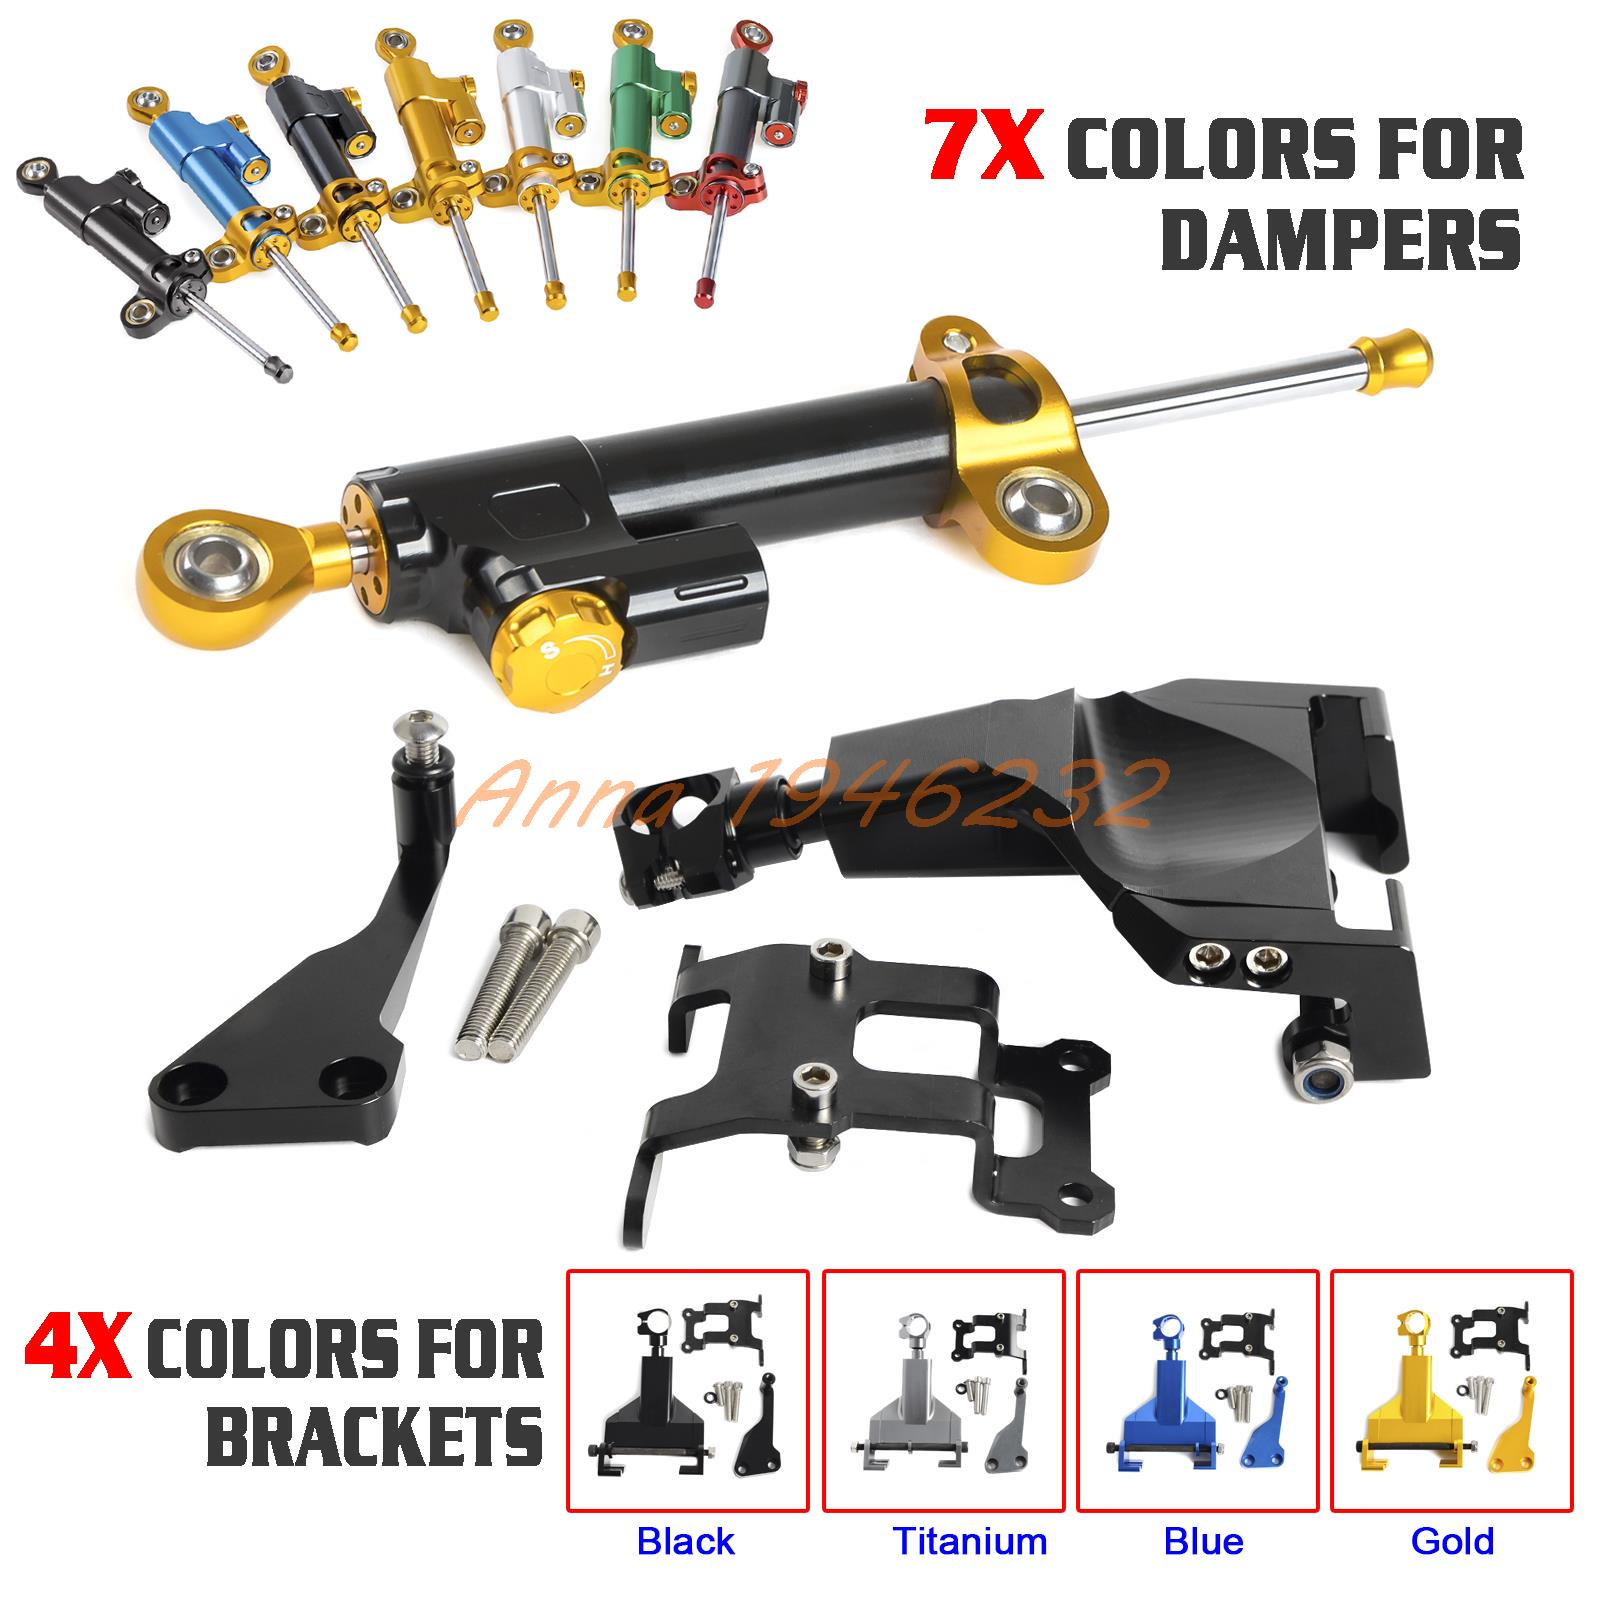 Motorcycle Steering Damper & Bracket Mounting Kit For YAMAHA MT07/MOTO CAGE 2014 2015 2016 MT 07 for yamaha mt 07 mt 07 fz07 mt07 2014 2015 2016 accessories coolant recovery tank shielding cover high quality cnc aluminum